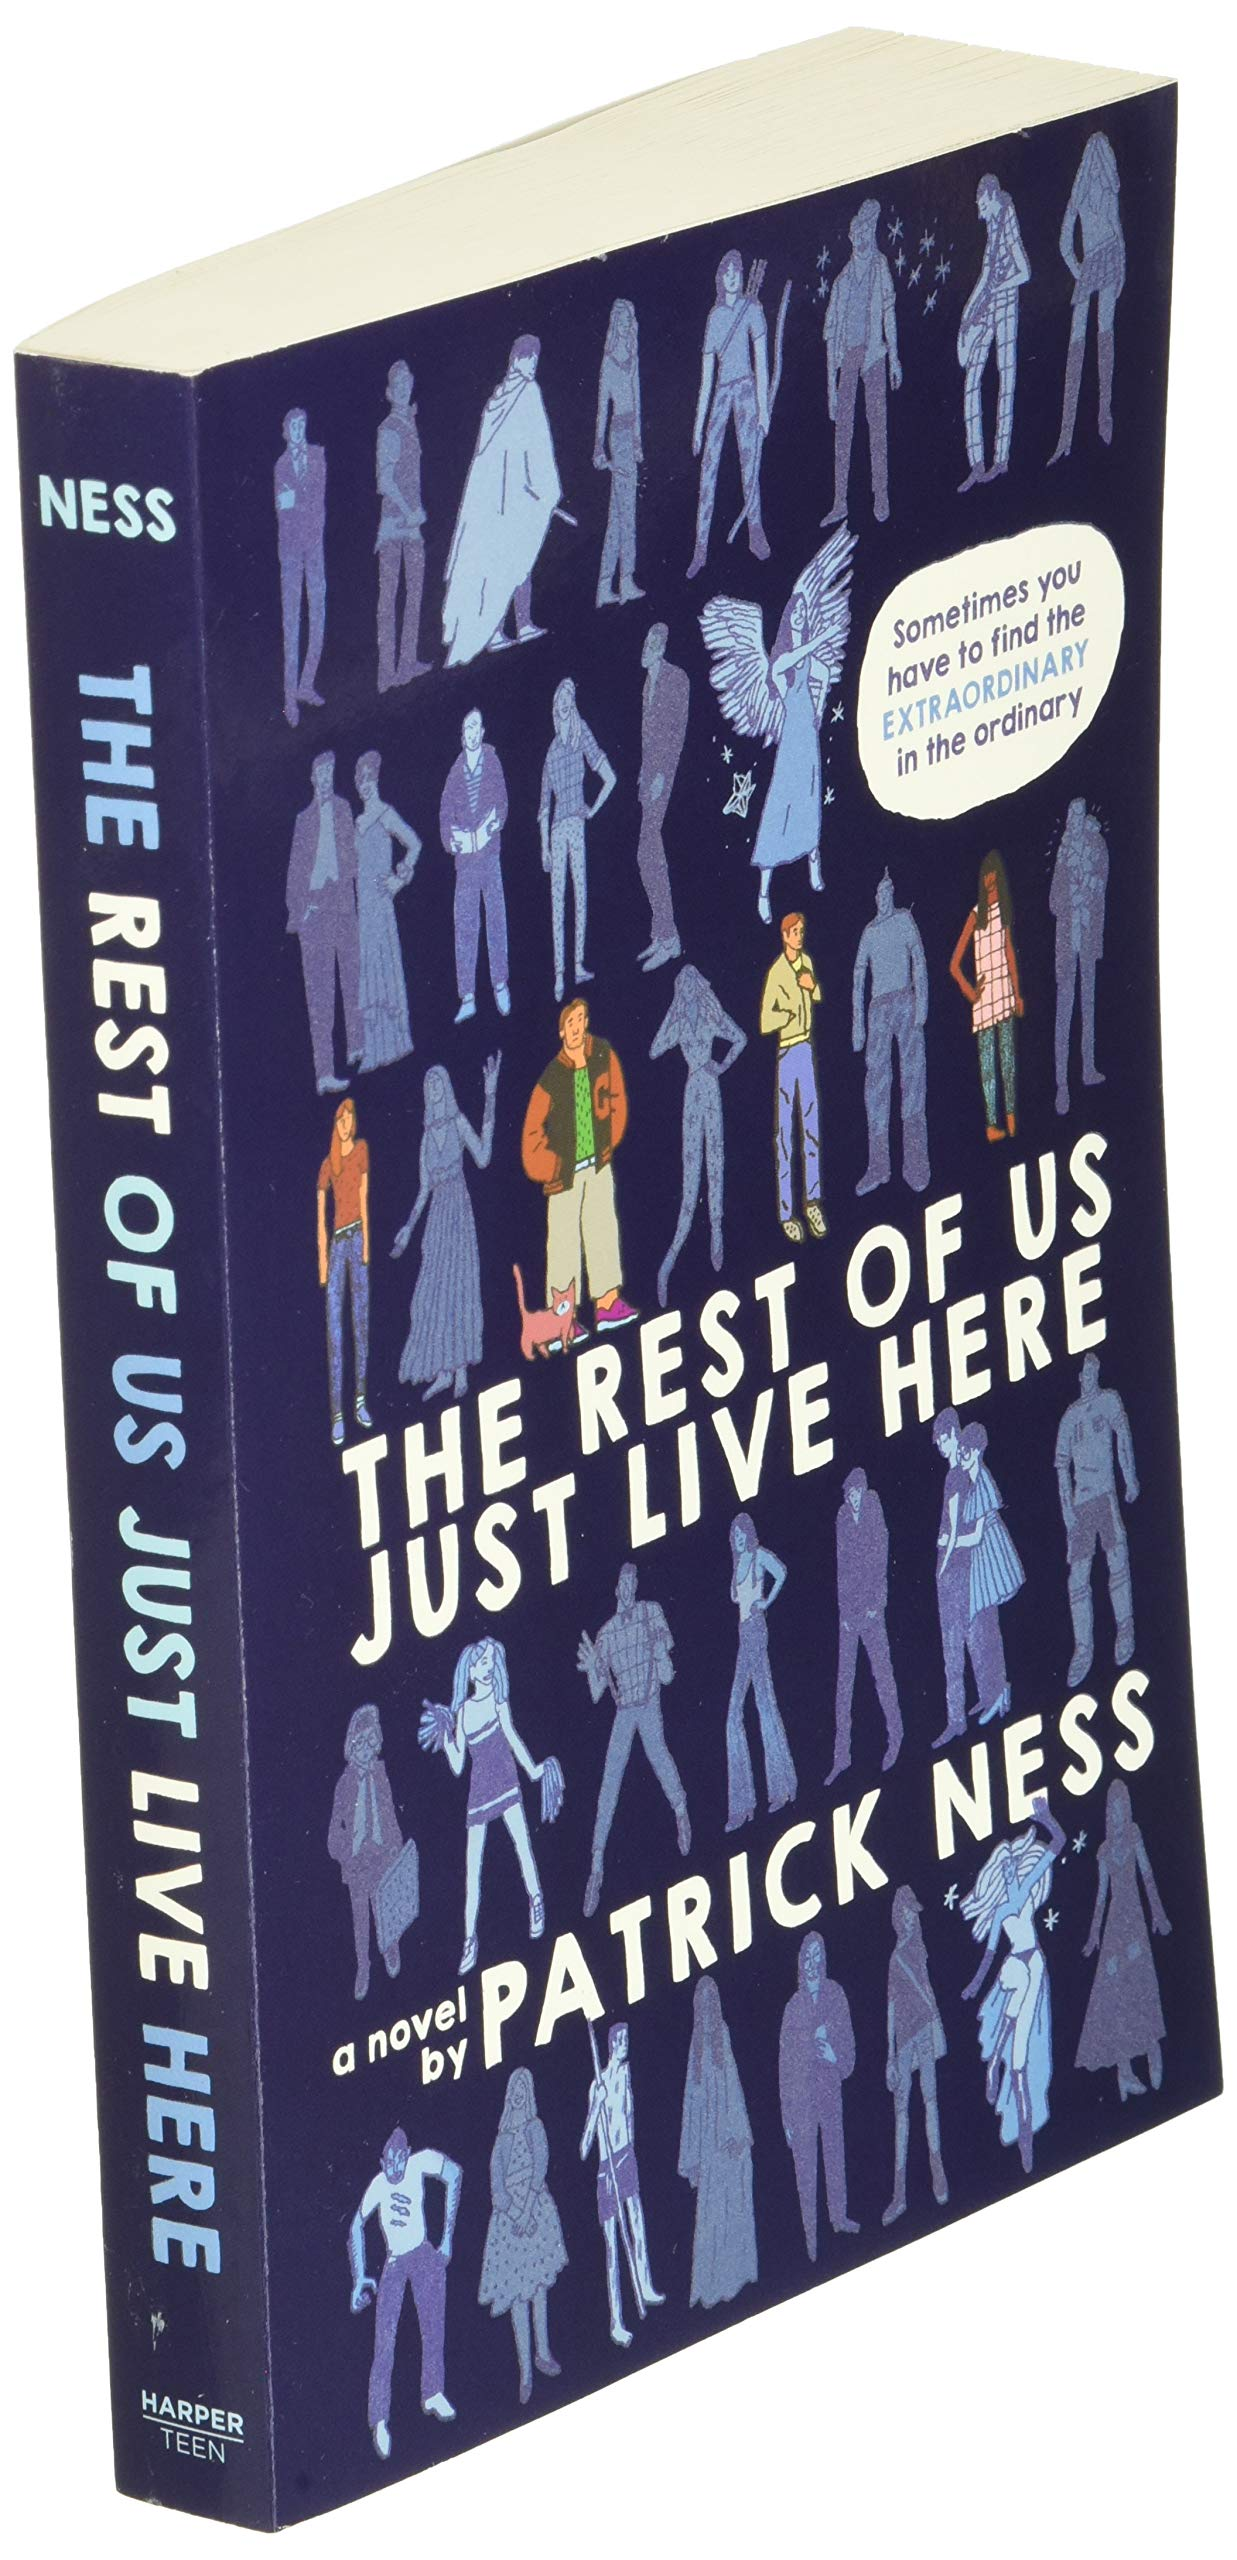 Download The Rest Of Us Just Live Here By Patrick Ness